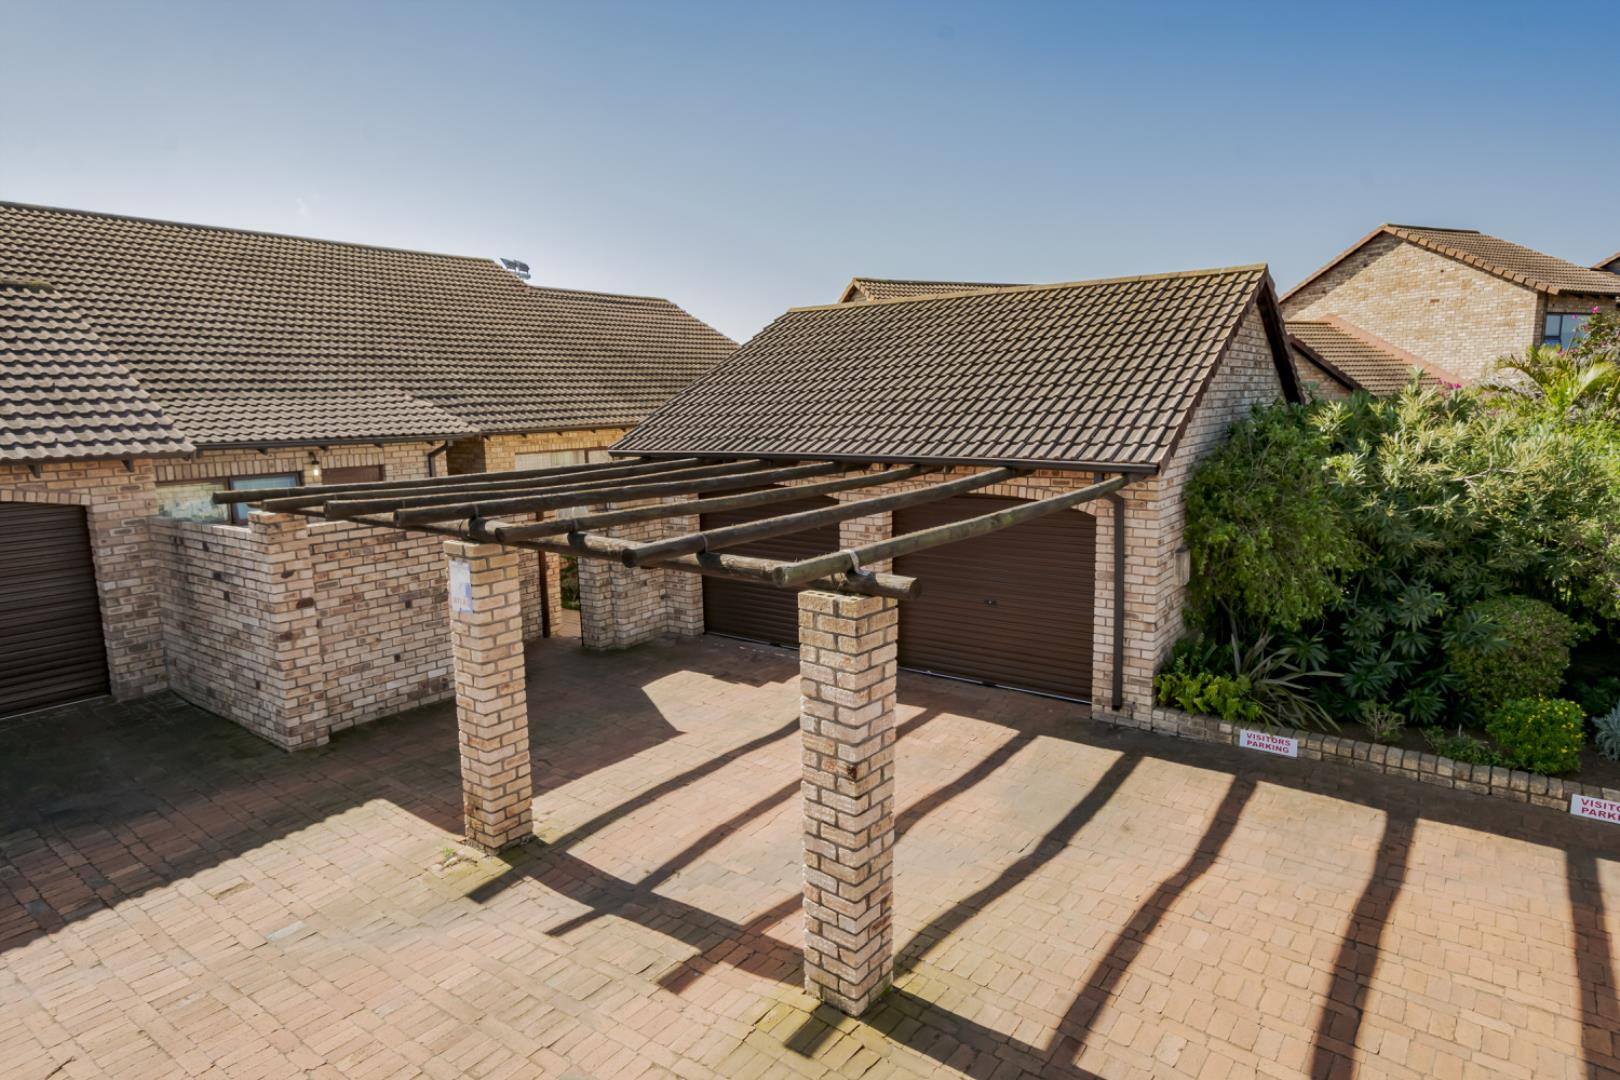 3 Bedroom Townhouse for Sale in Greenacres, Port Elizabeth - Eastern Cape